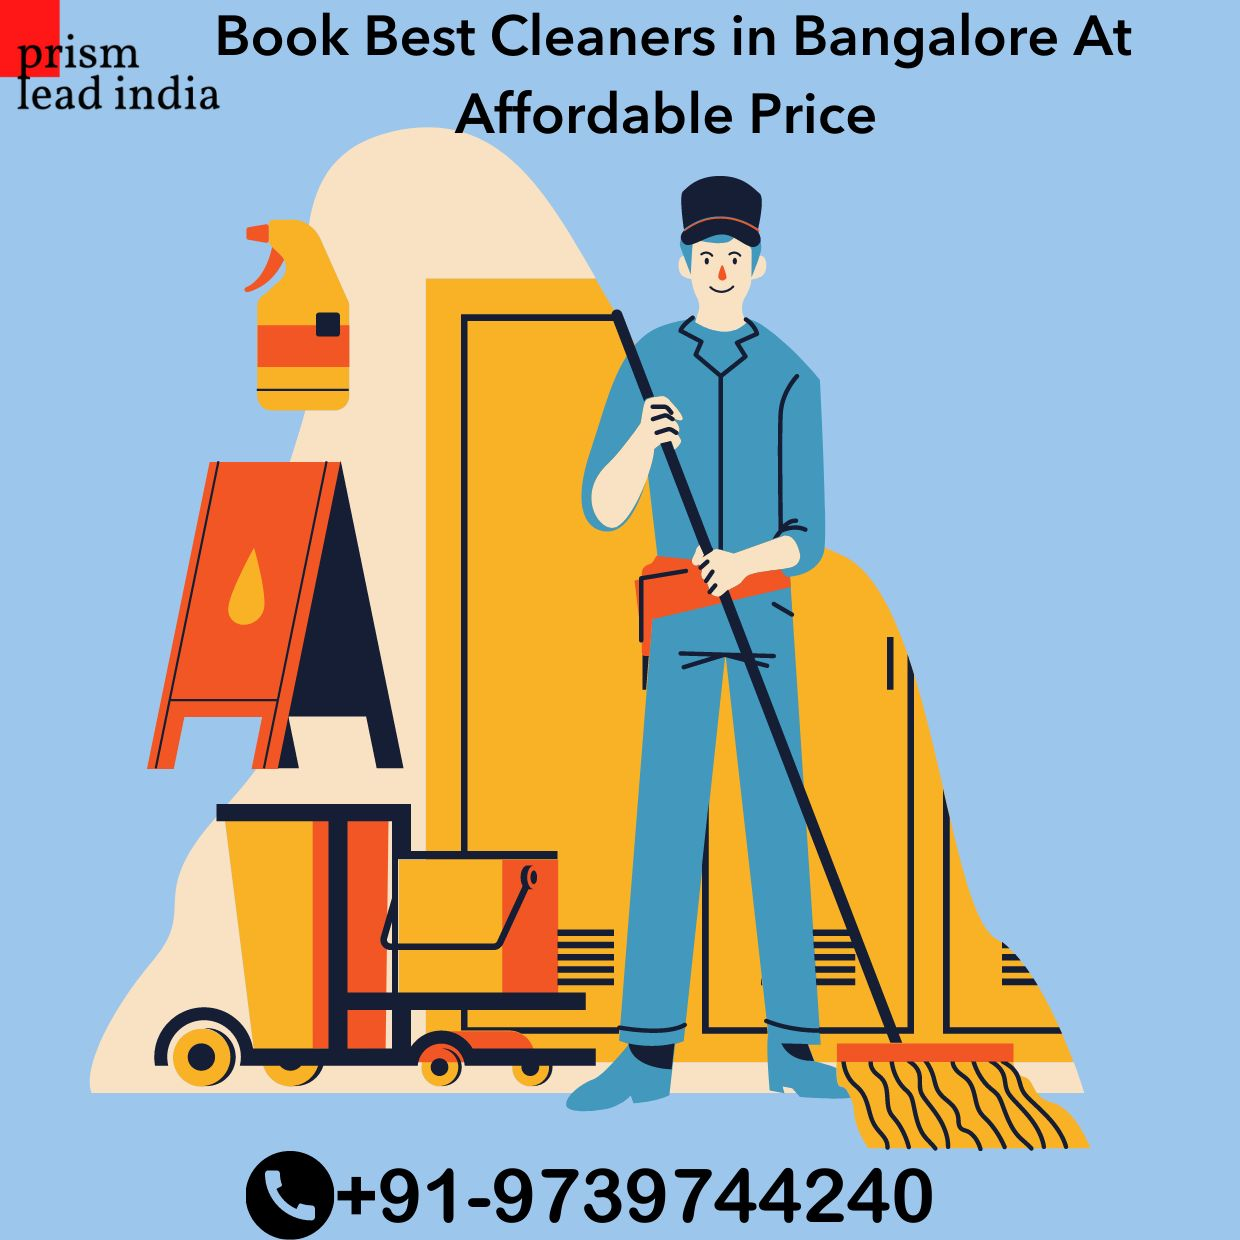 Best Bathroom Cleaning Services Near Me in Bangalore # PRISM LEAD INDIA